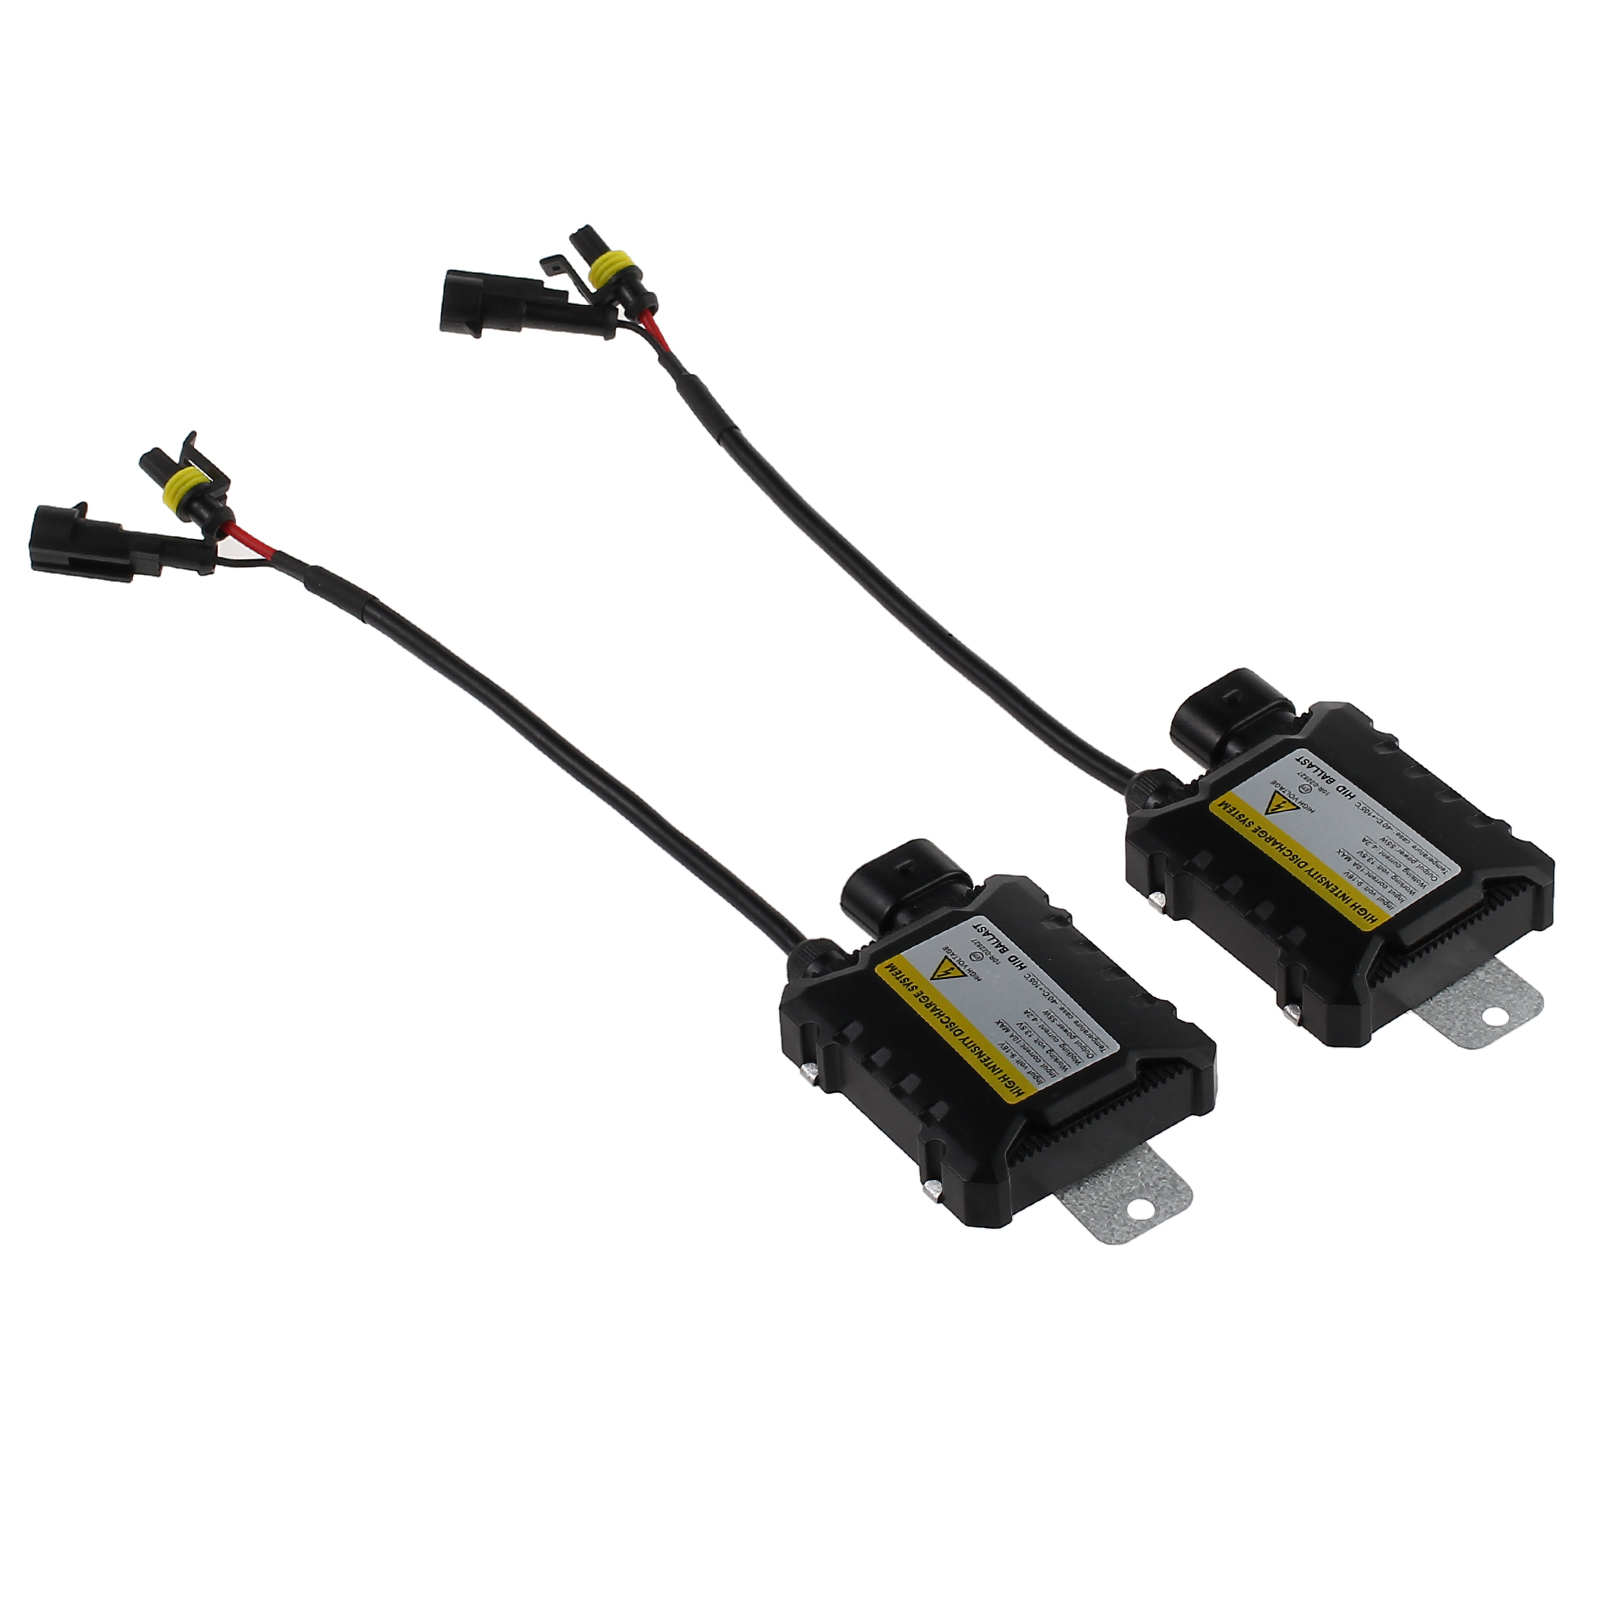 Slimline Ballast Wiring Diagram: 2PCS 12V 55W Car Slim Digital HID Ballast Xenon Light